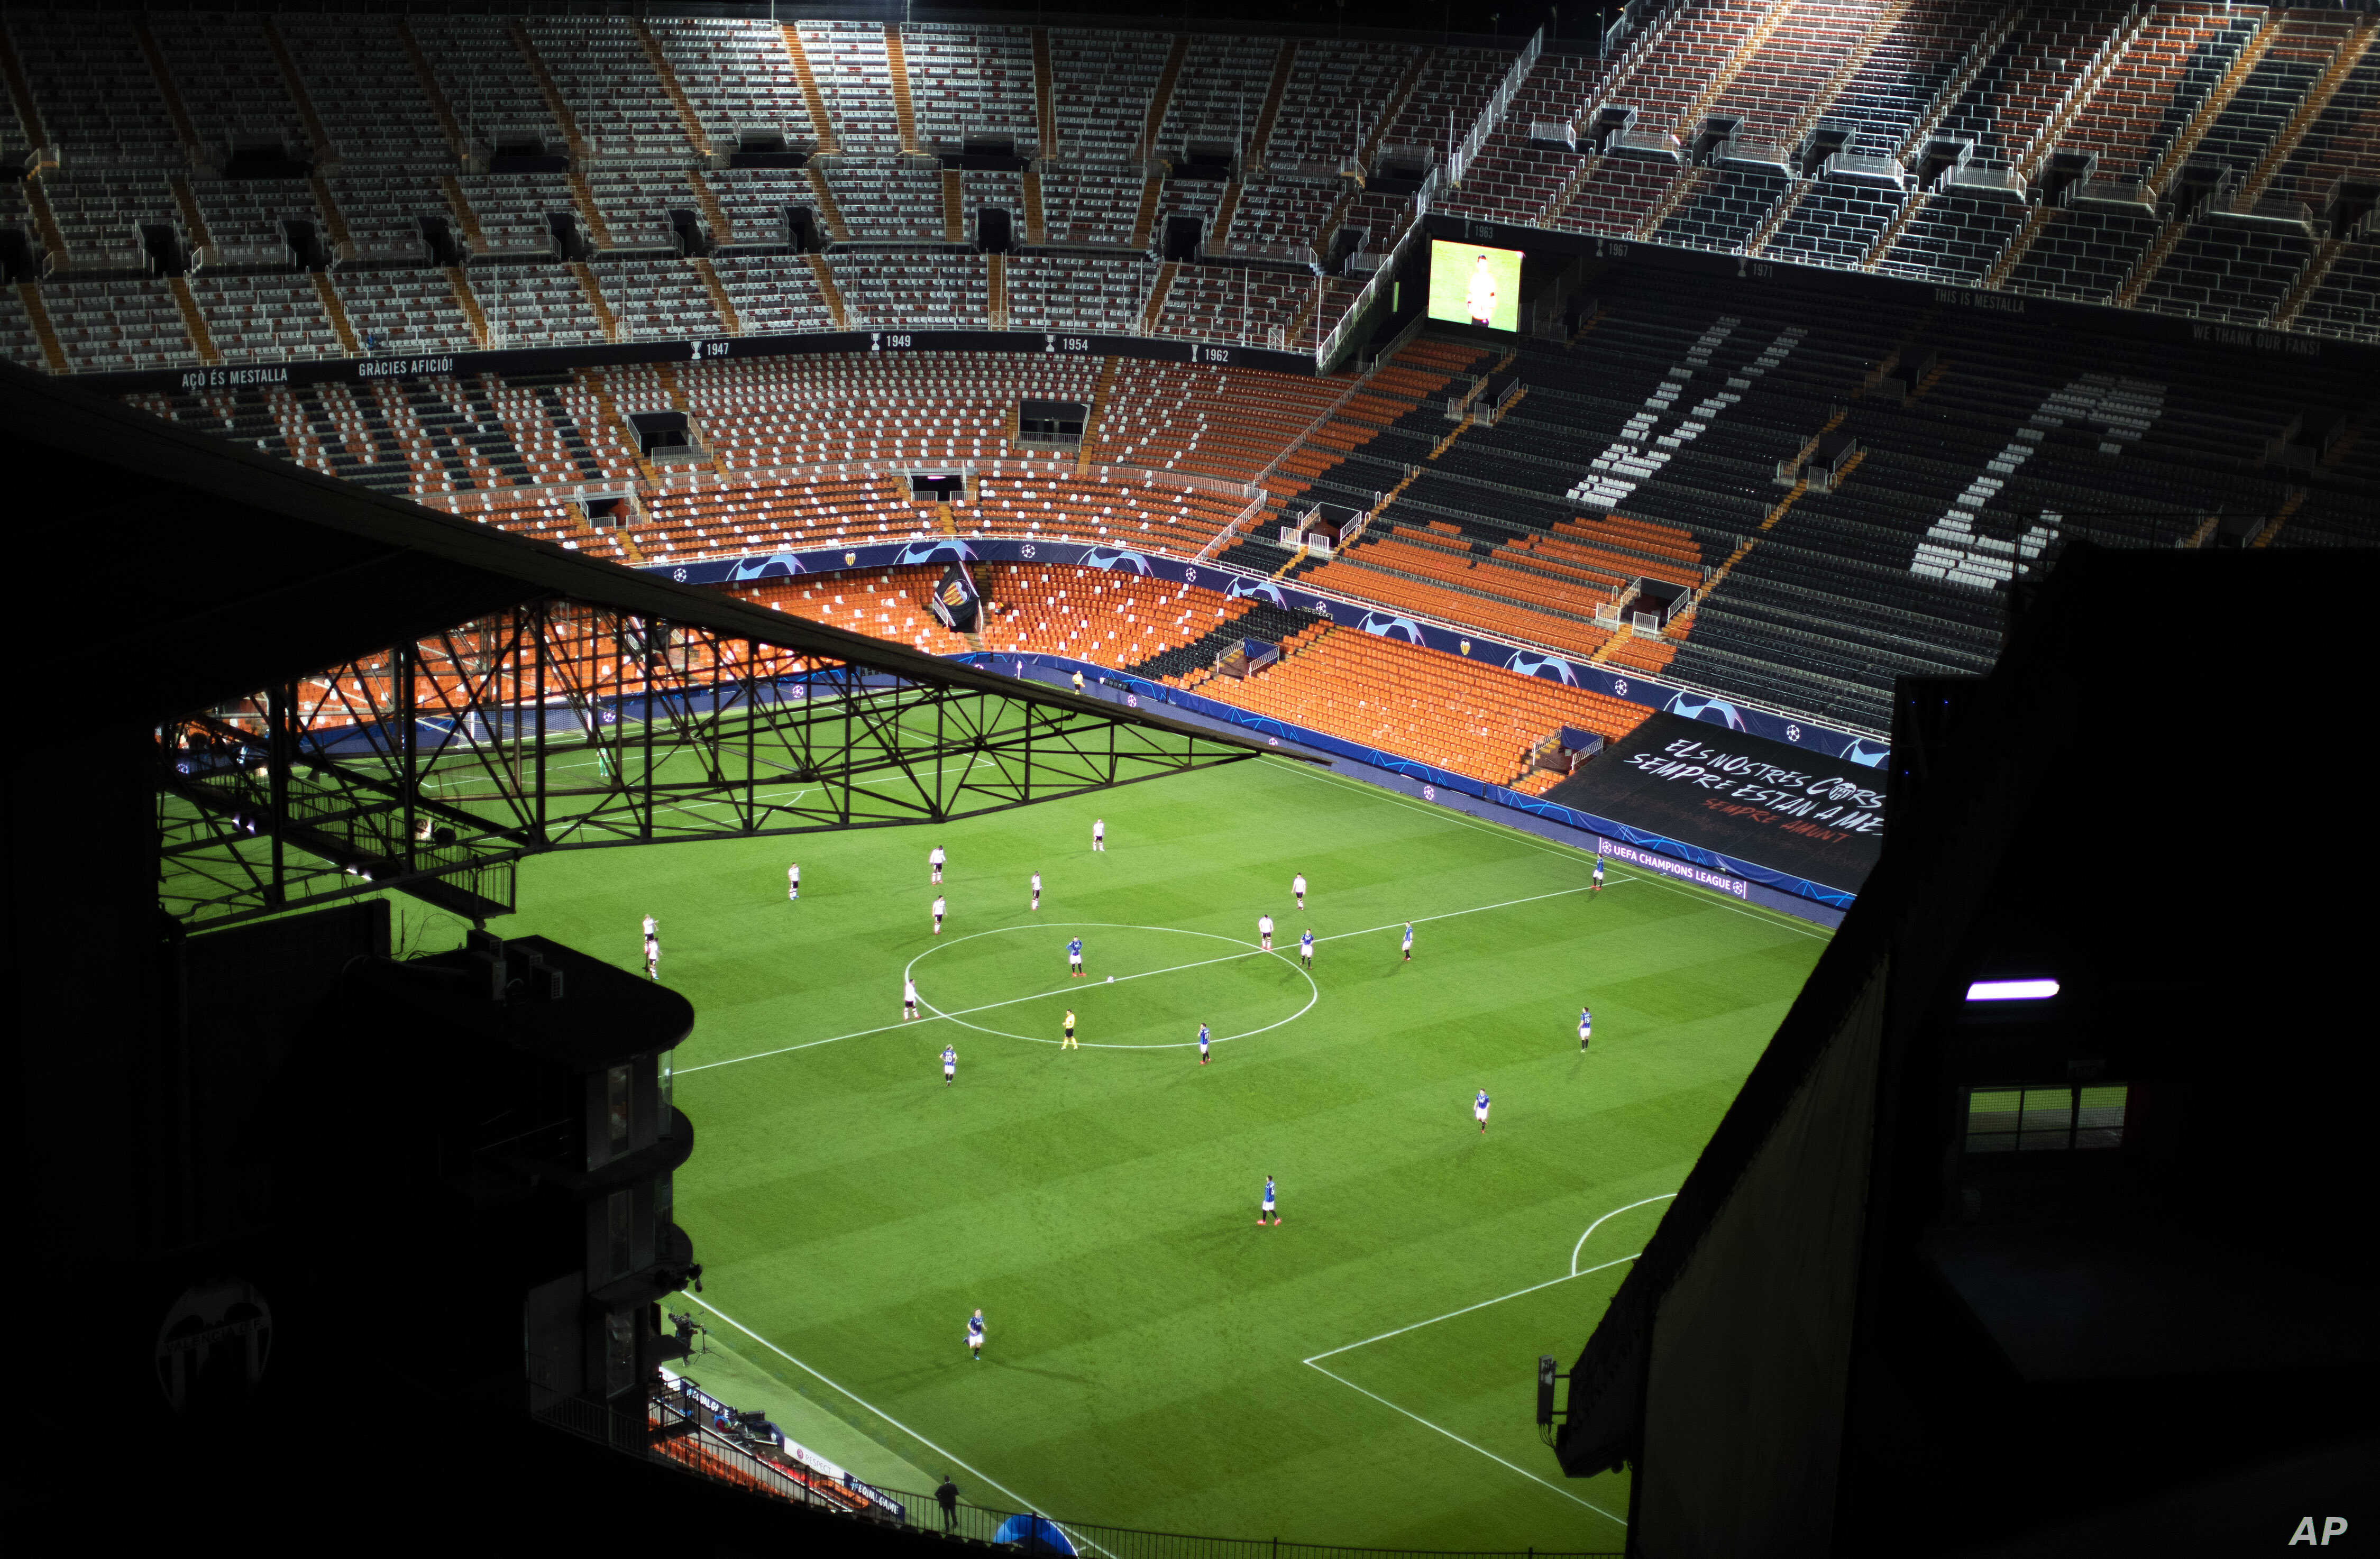 General view of the Mestalla stadium during the Champions League round of 16 second leg soccer match between Valencia and Atalanta in Valencia, Spain, Tuesday March 10, 2020. The match is being in an empty stadium because of the coronavirus outbreak. (AP Photo/Emilio Morenatti)